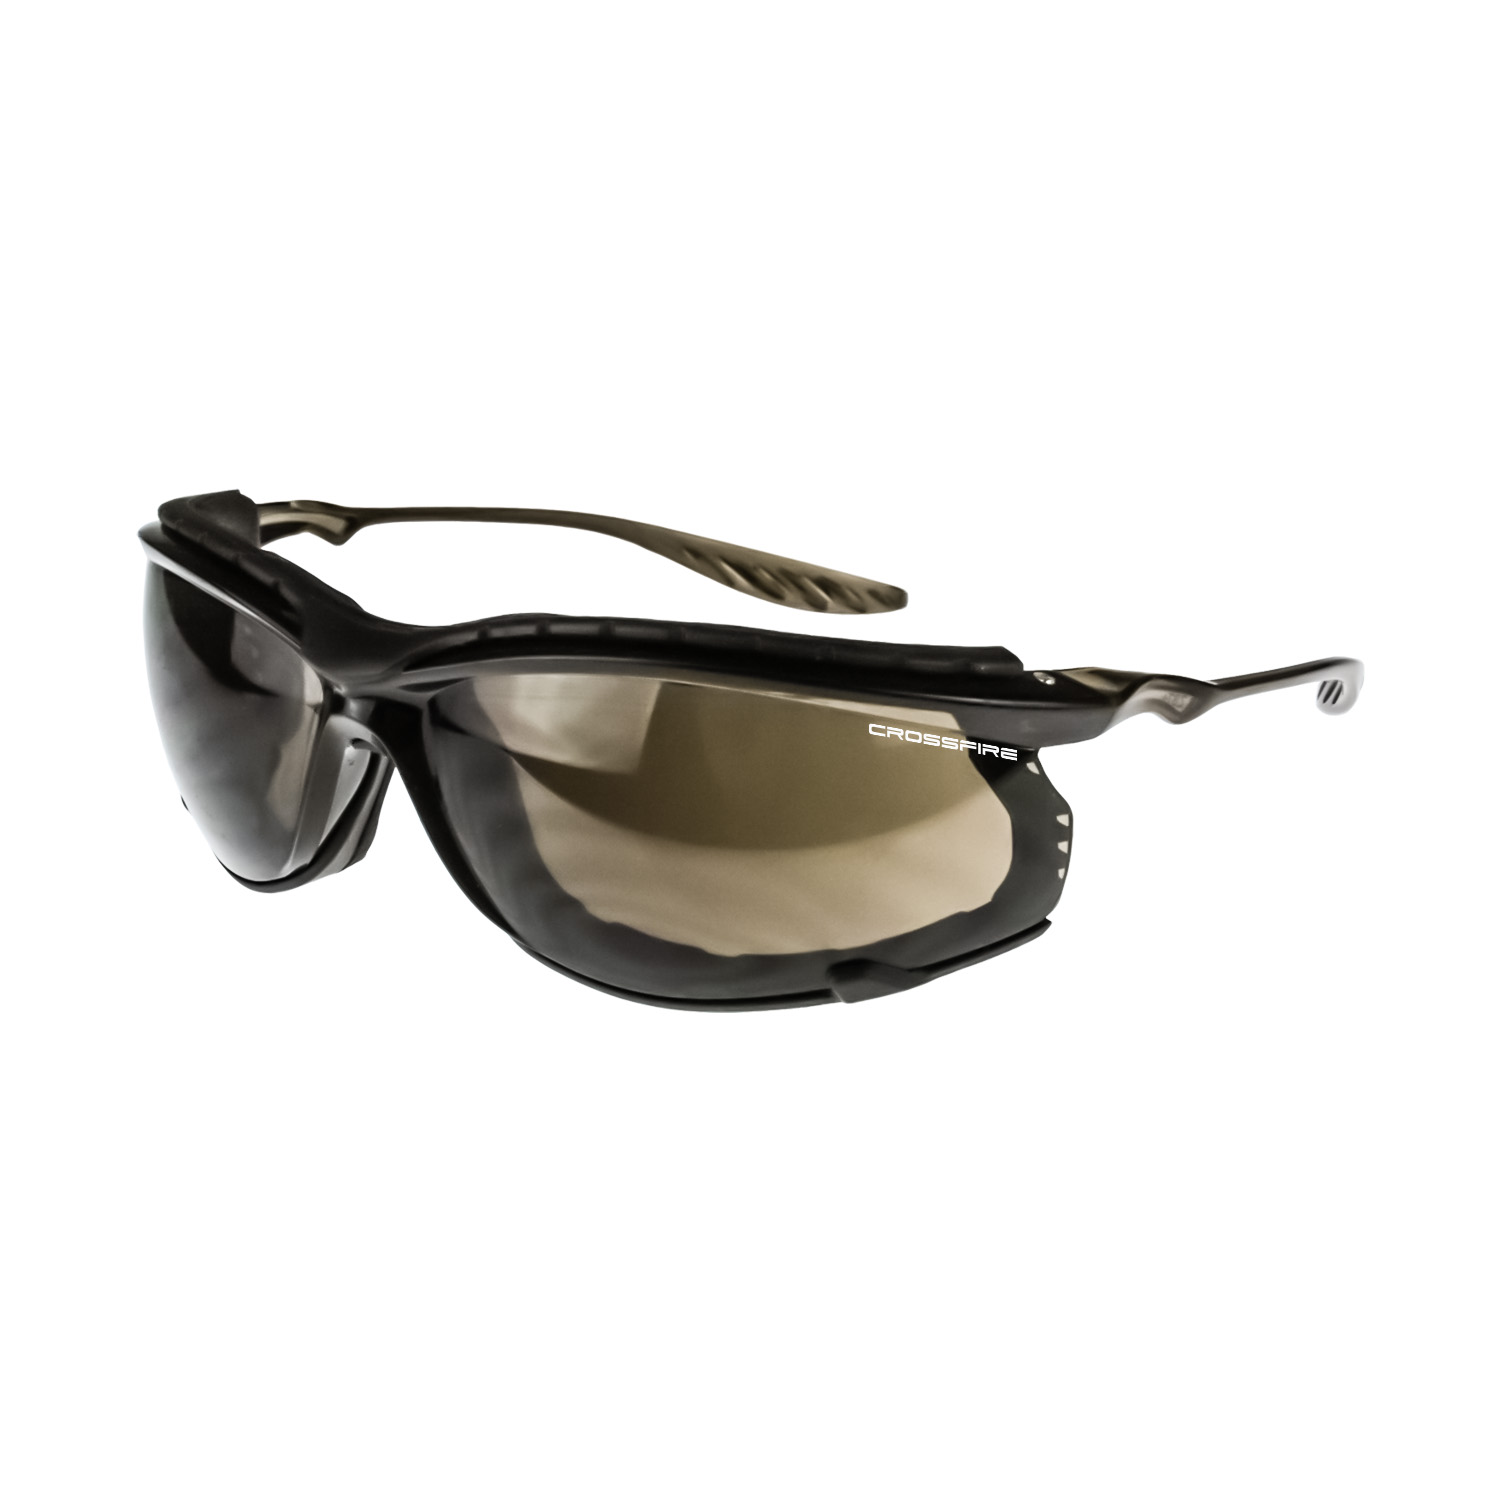 Crossfire 37415 Safety Glasses